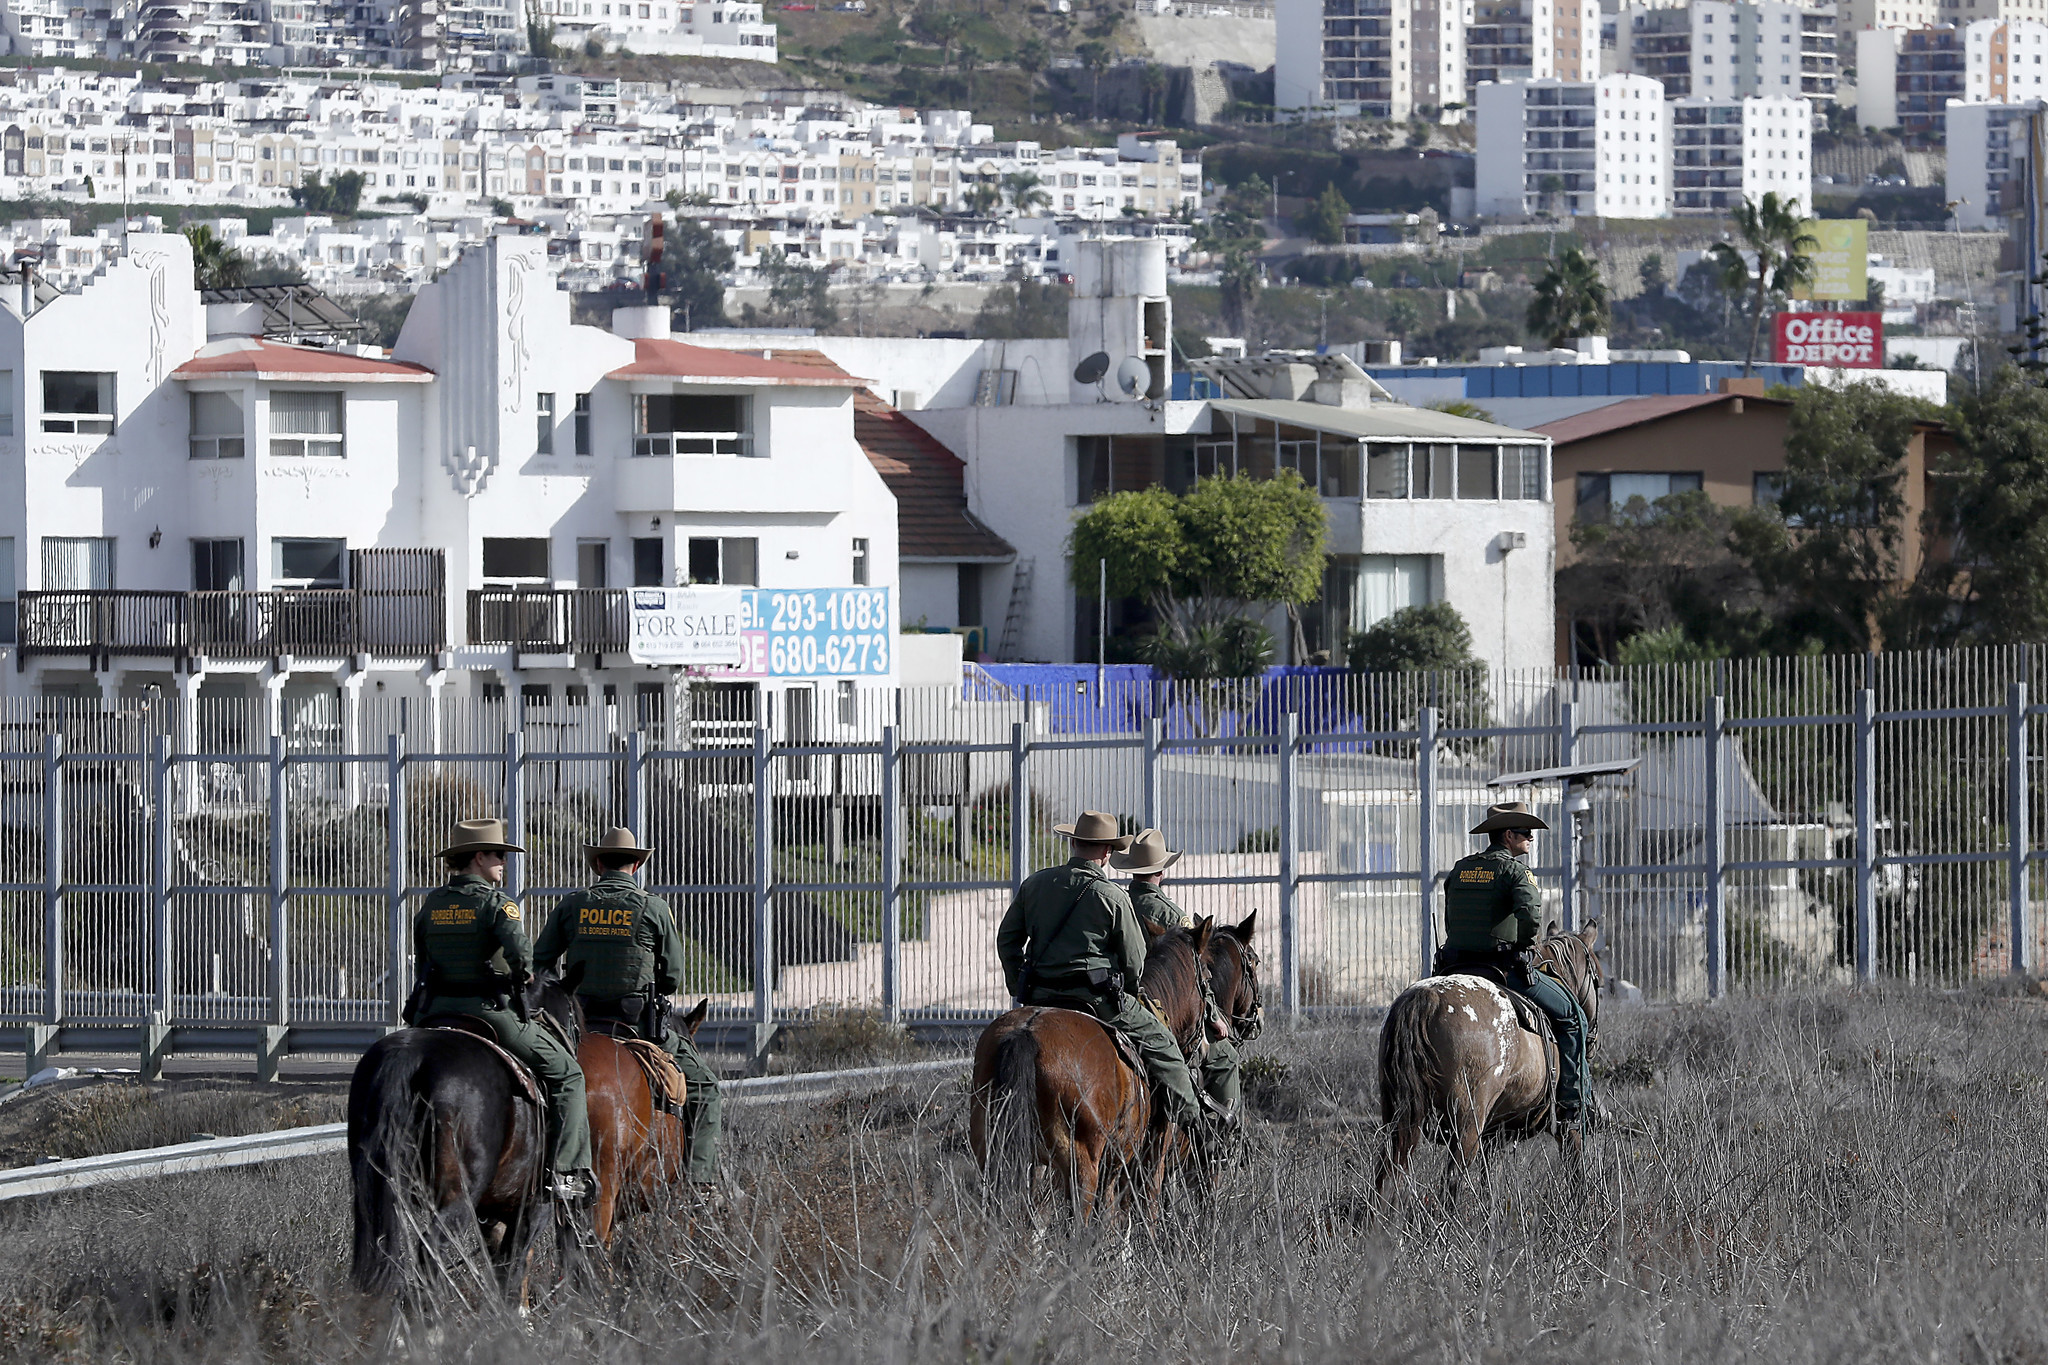 IMPERIAL BEACH, CALIF.. - NOV. 14, 2018. U.S. Botder Patrol officers patrol on horseback near the b